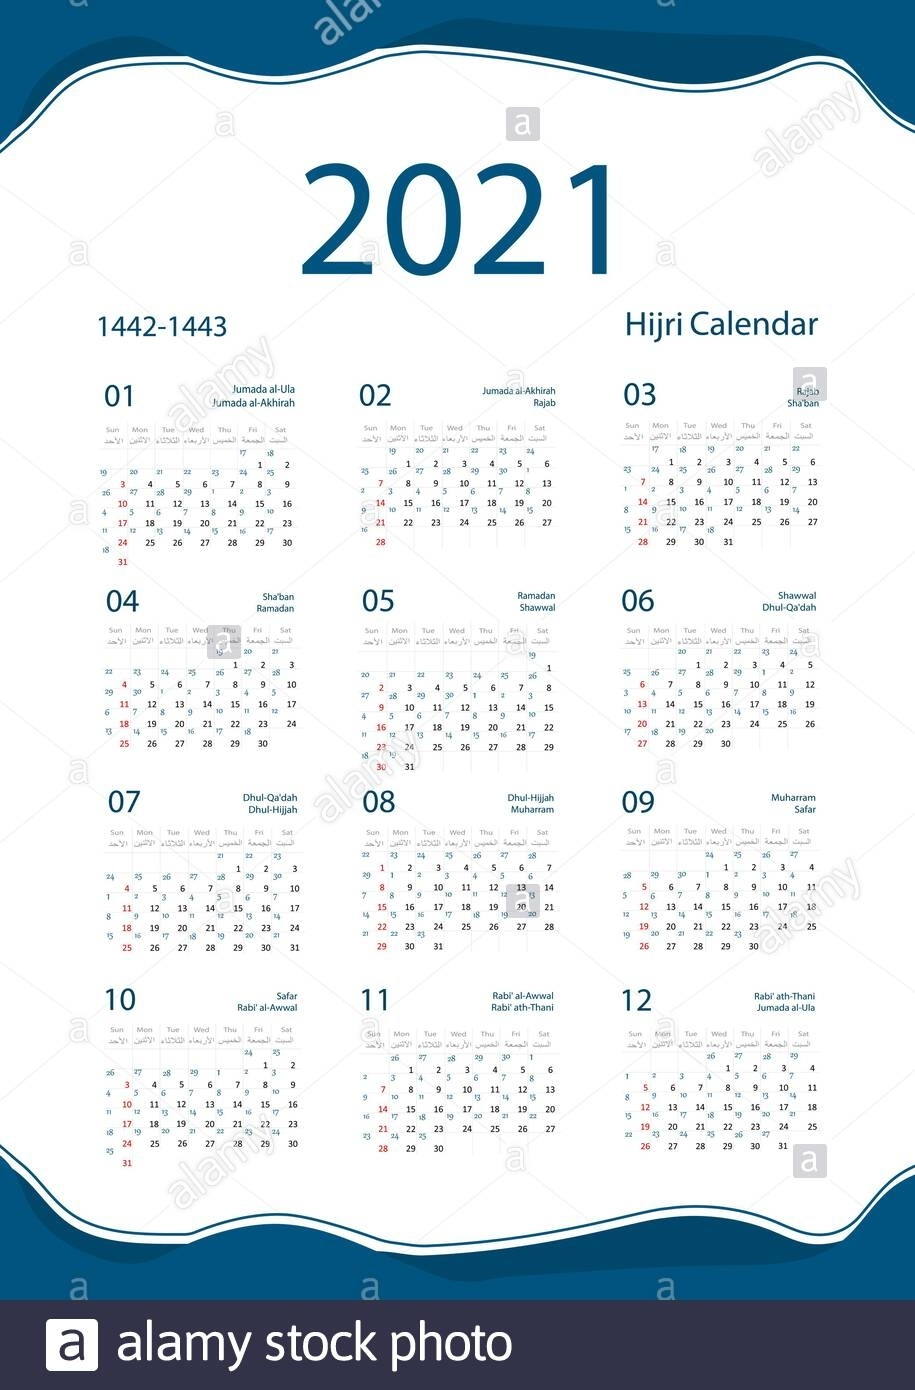 Hijri Islamic Calendar 2021 From 1442 To 1443 Vector